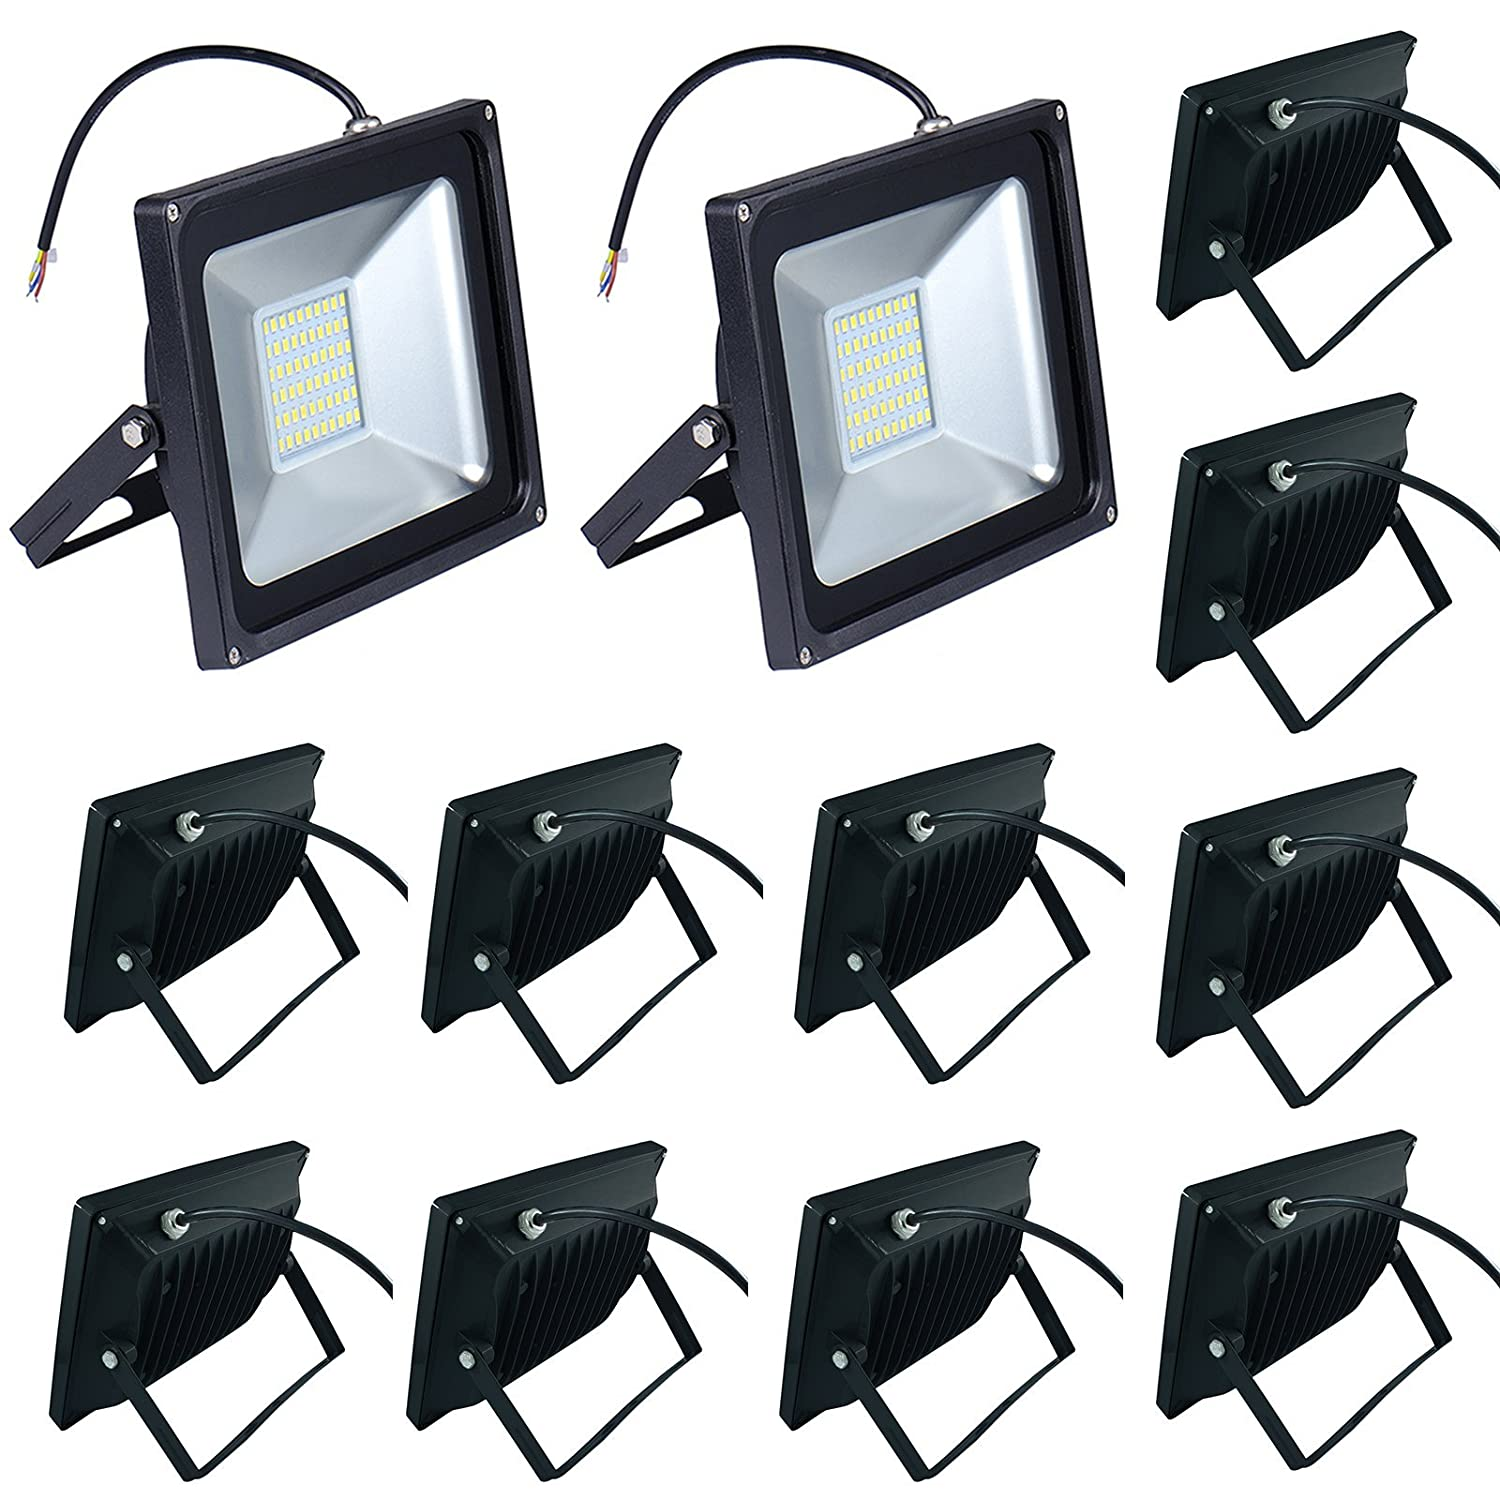 10 pack 50w led floodlight low energy warm white spotlight ip65 10 pack 50w led floodlight low energy warm white spotlight ip65 waterproof outdoorindoor security flood light landscape lamp amazon aloadofball Choice Image